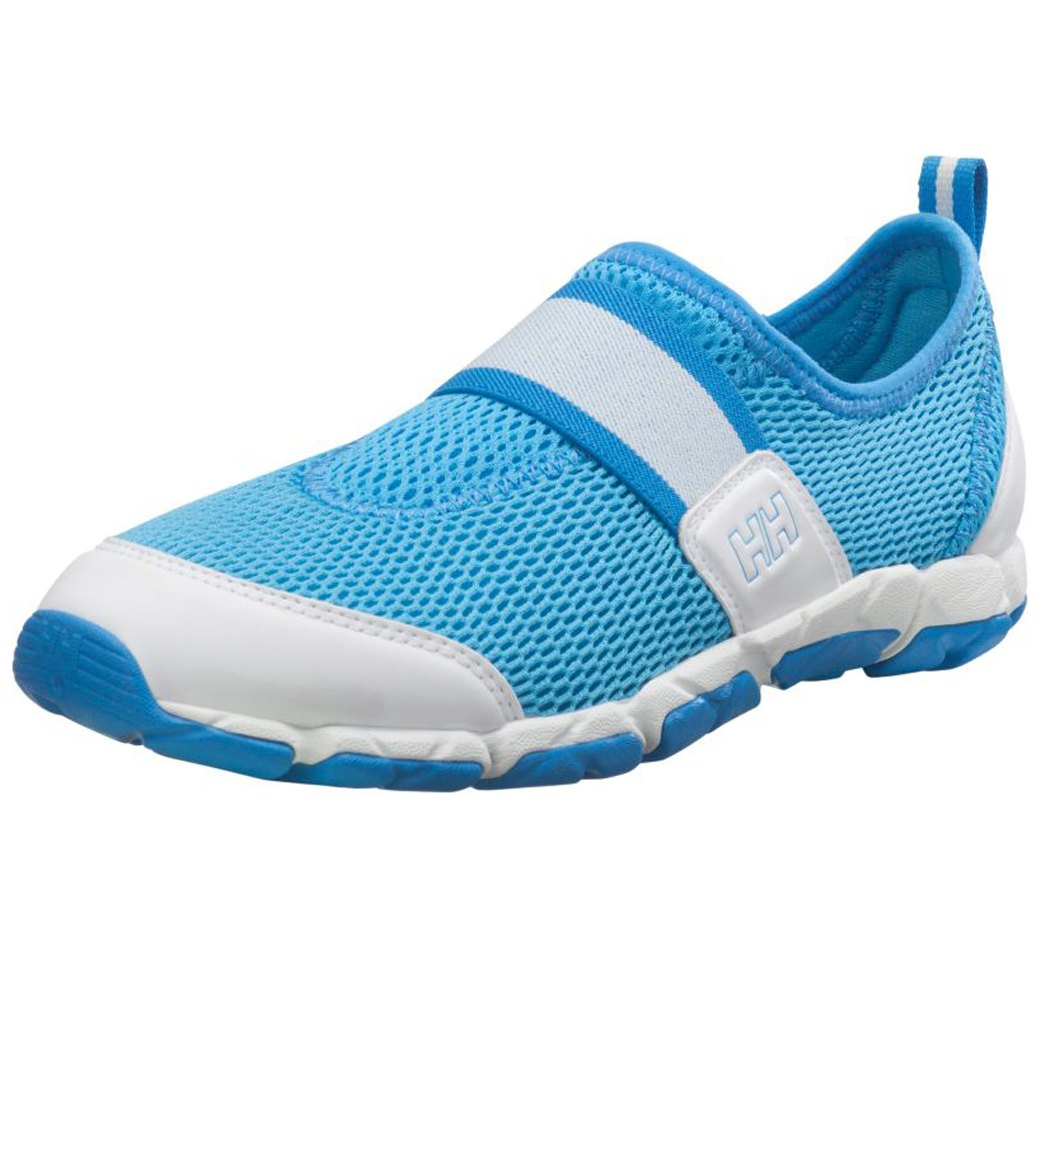 Womens Avec Les Watermoc 5 Chaussures De Fitness Hansen Helly 0AgoC